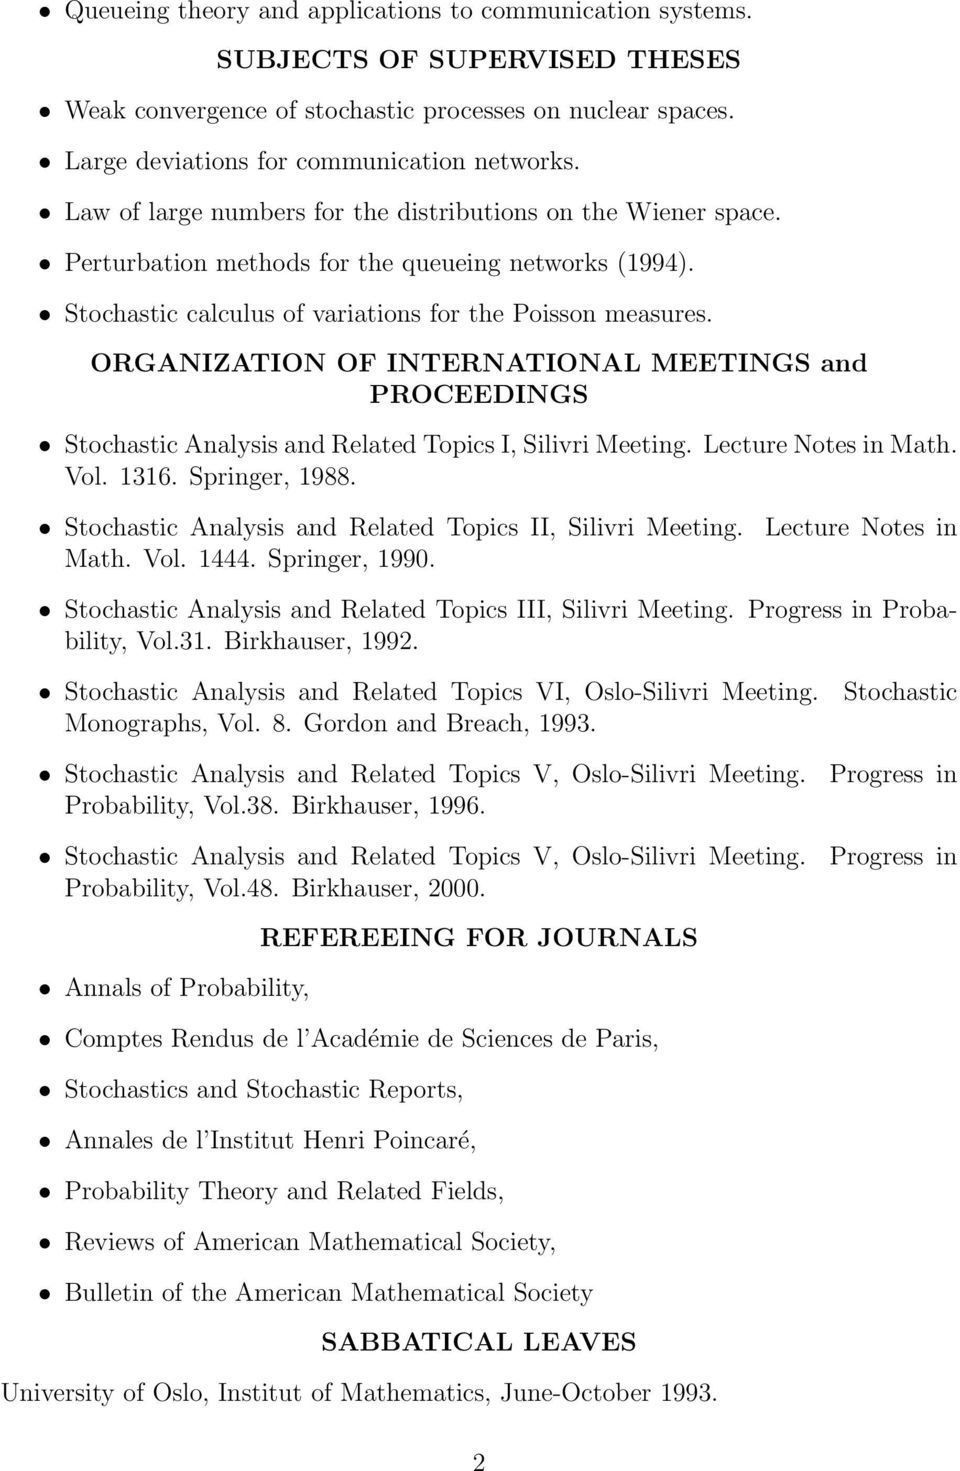 ORGANIZATION OF INTERNATIONAL MEETINGS and PROCEEDINGS Stochastic Analysis and Related Topics I, Silivri Meeting. Lecture Notes in Math. Vol. 1316. Springer, 1988.